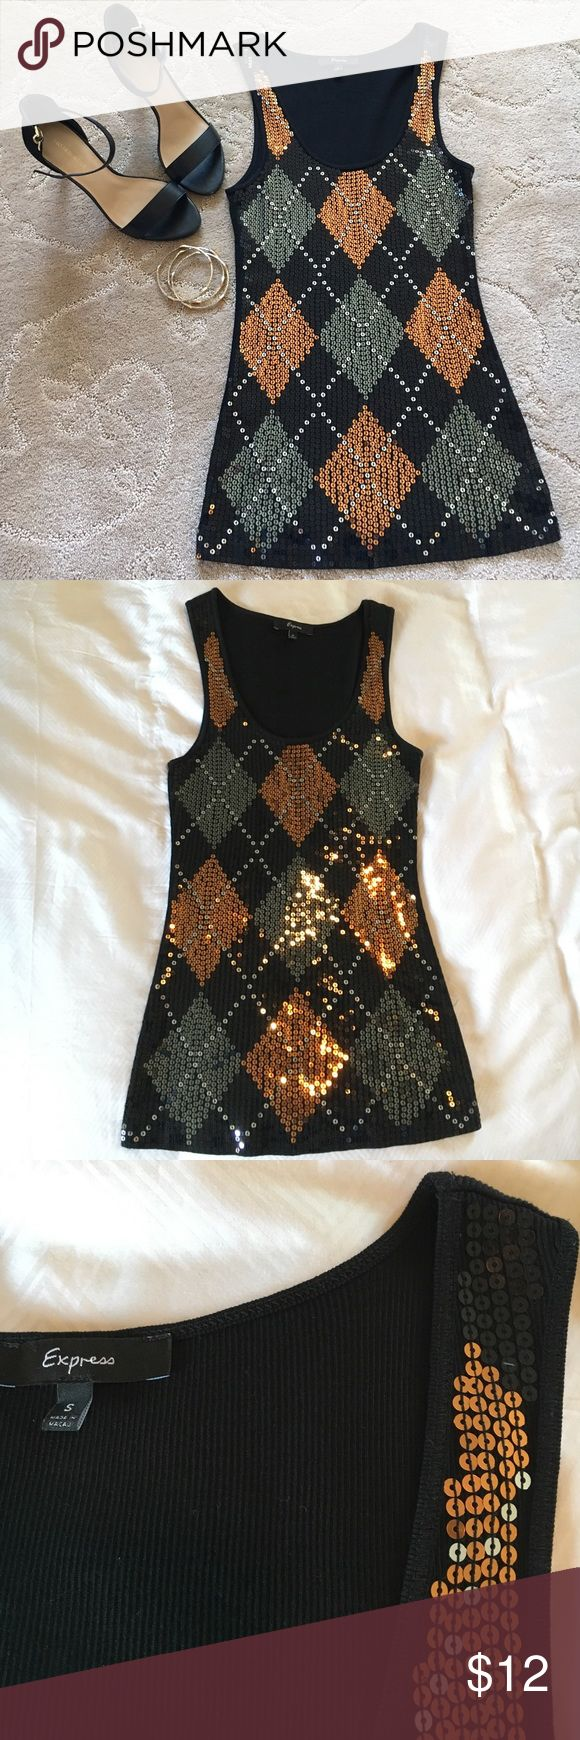 Express black sequin tank top Express black tank top with argyle sequin pattern.  Orange and grey sequin.  Comfy yet edgy.  100% cotton.  Very flattering cut.  EUC. Express Tops Tank Tops